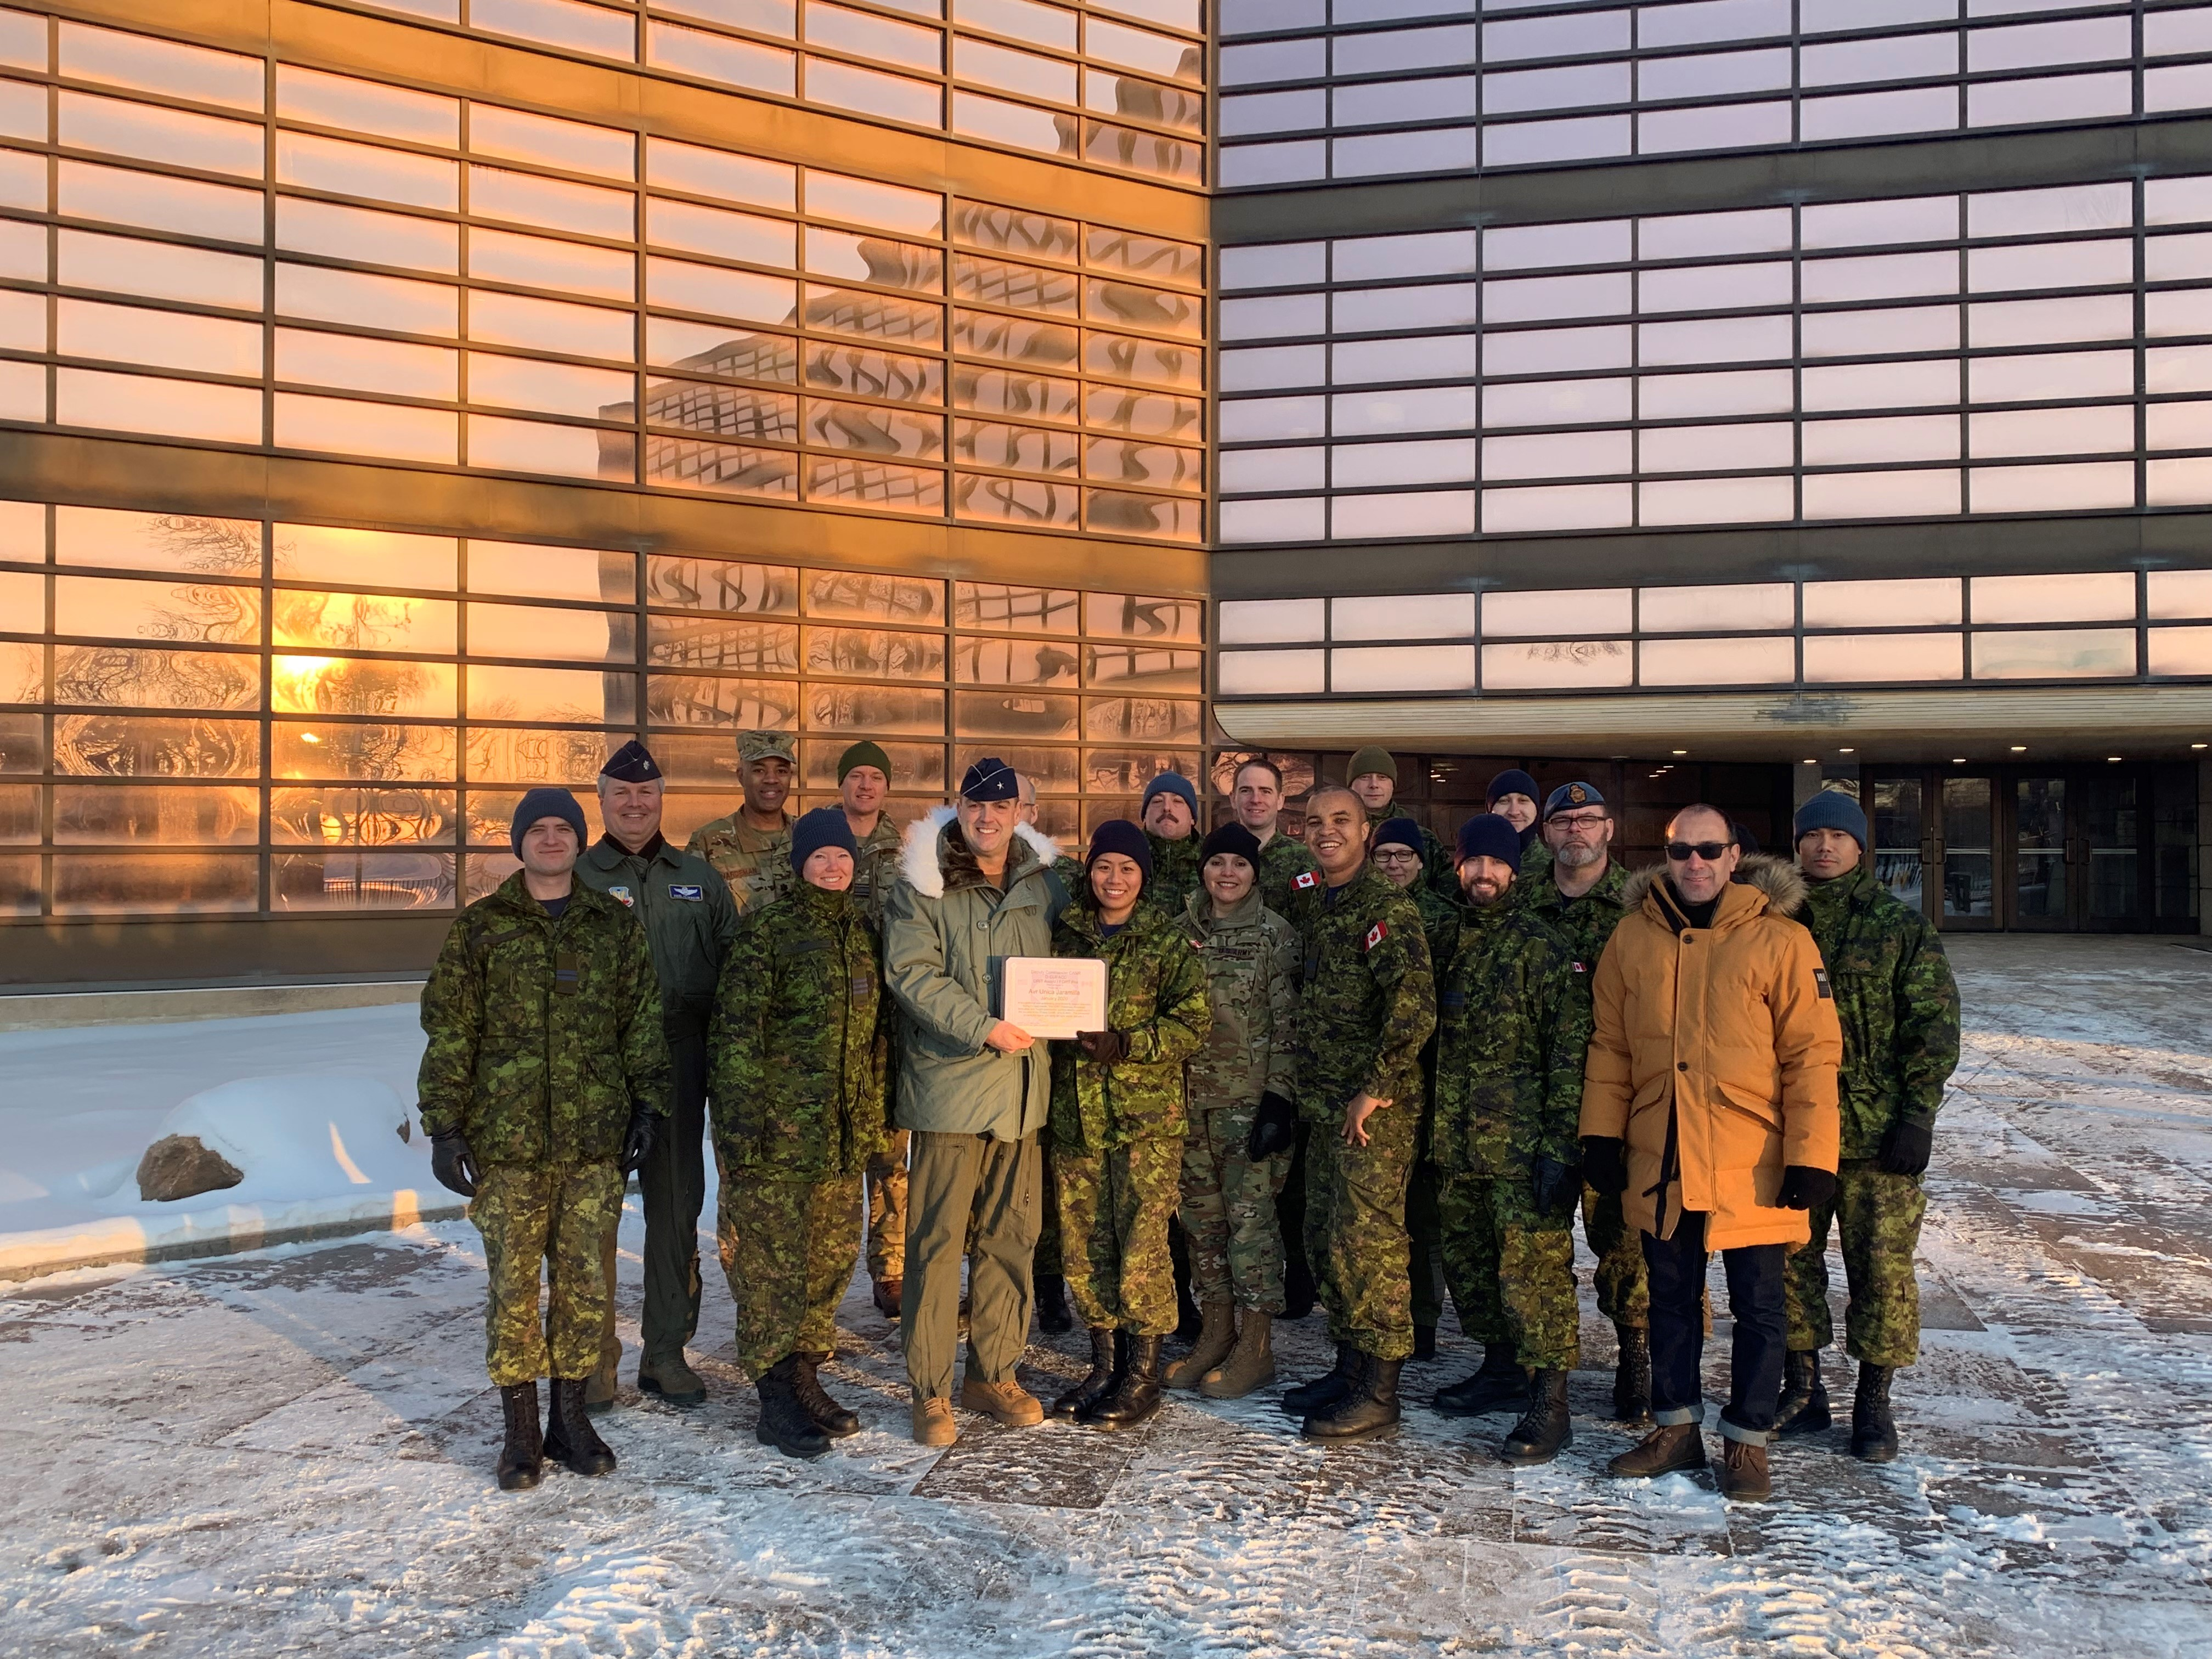 A large group of people stand in the snow near a large glassed building; a uniformed man gives a certificate to a woman wearing a disruptive patterned uniform.